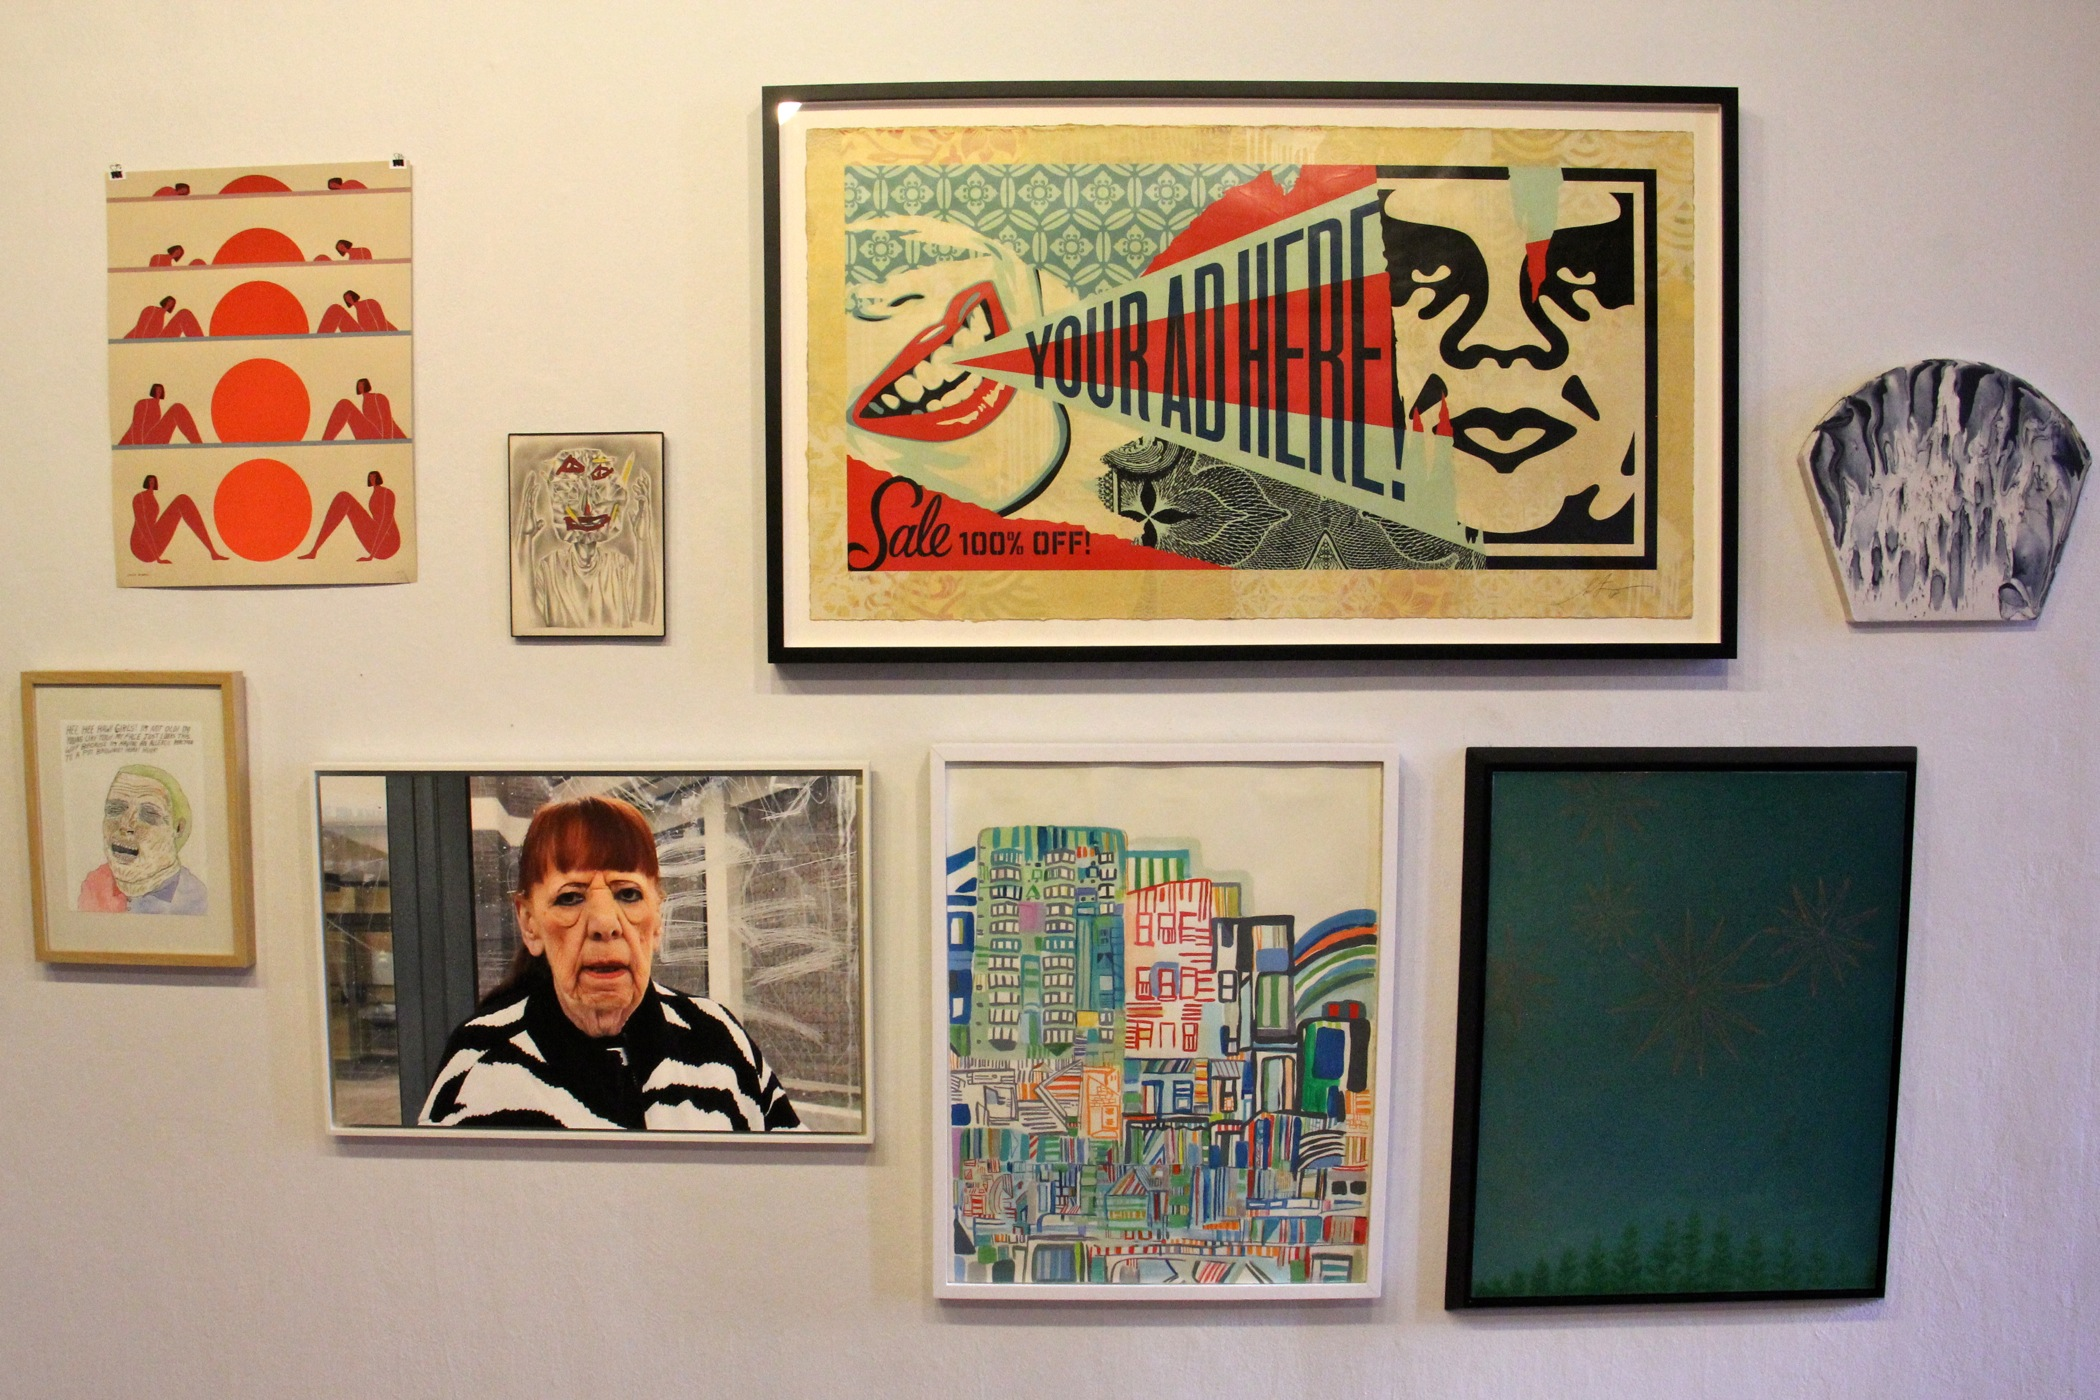 A photograph by Zoe Strauss (lower left) and a print by Shepard Fairey (upper right), which is expected to bring $11,000, are among the works to be auctioned for the benefit of Space 1026.